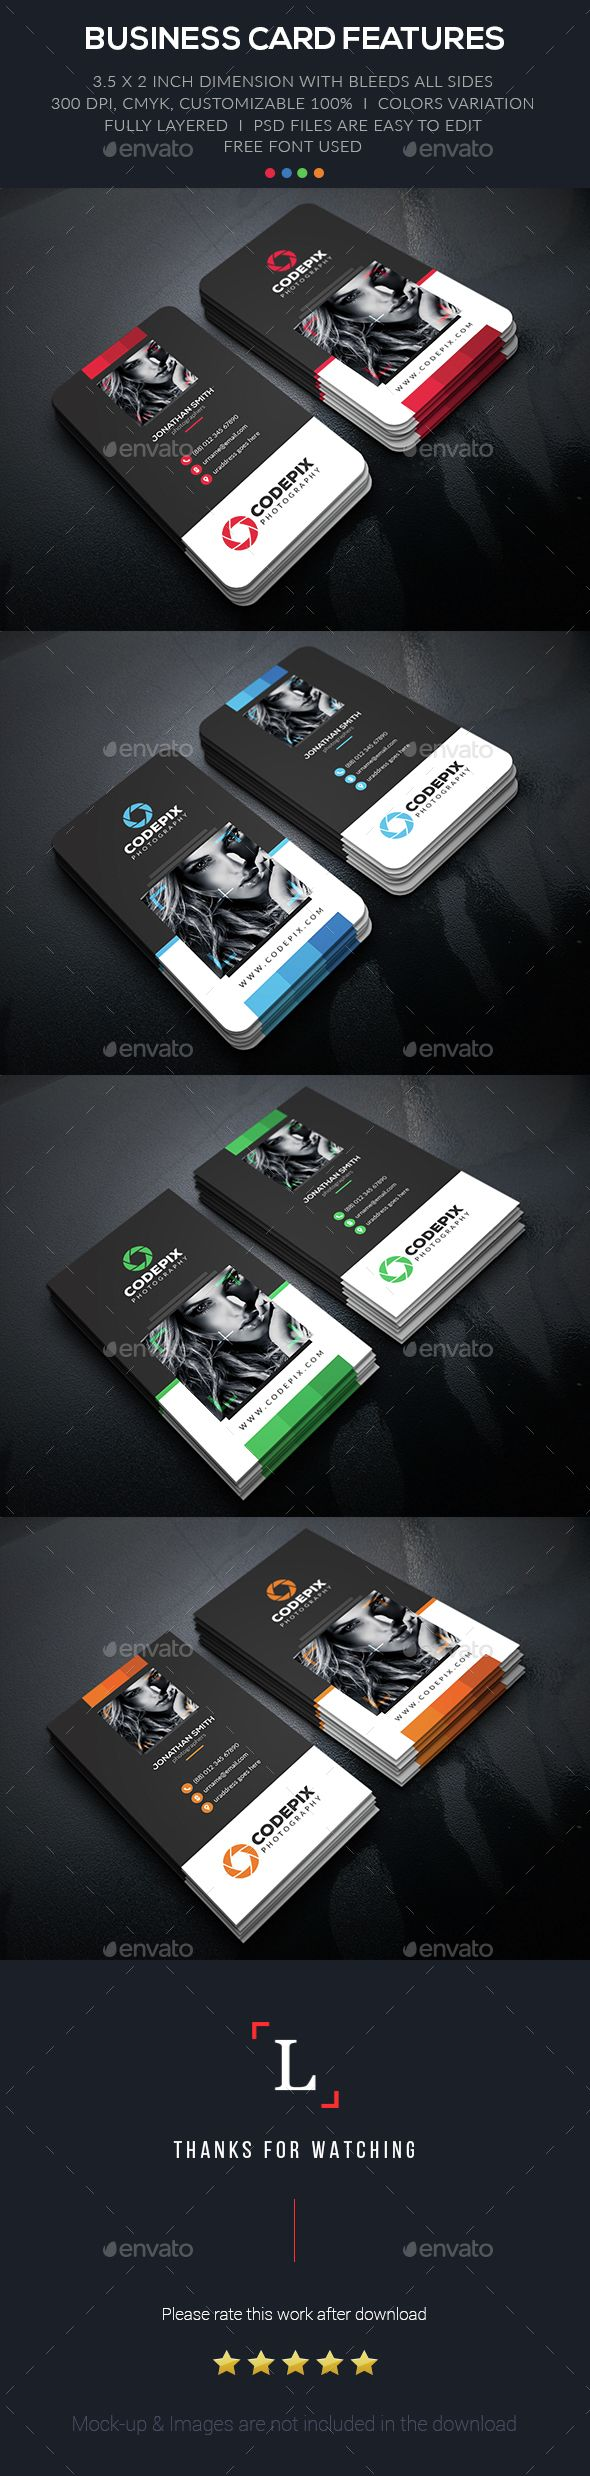 Personal Photography Business Card Template PSD. Download here: http://graphicriver.net/item/personal-photography-business-card/15351710?ref=ksioks